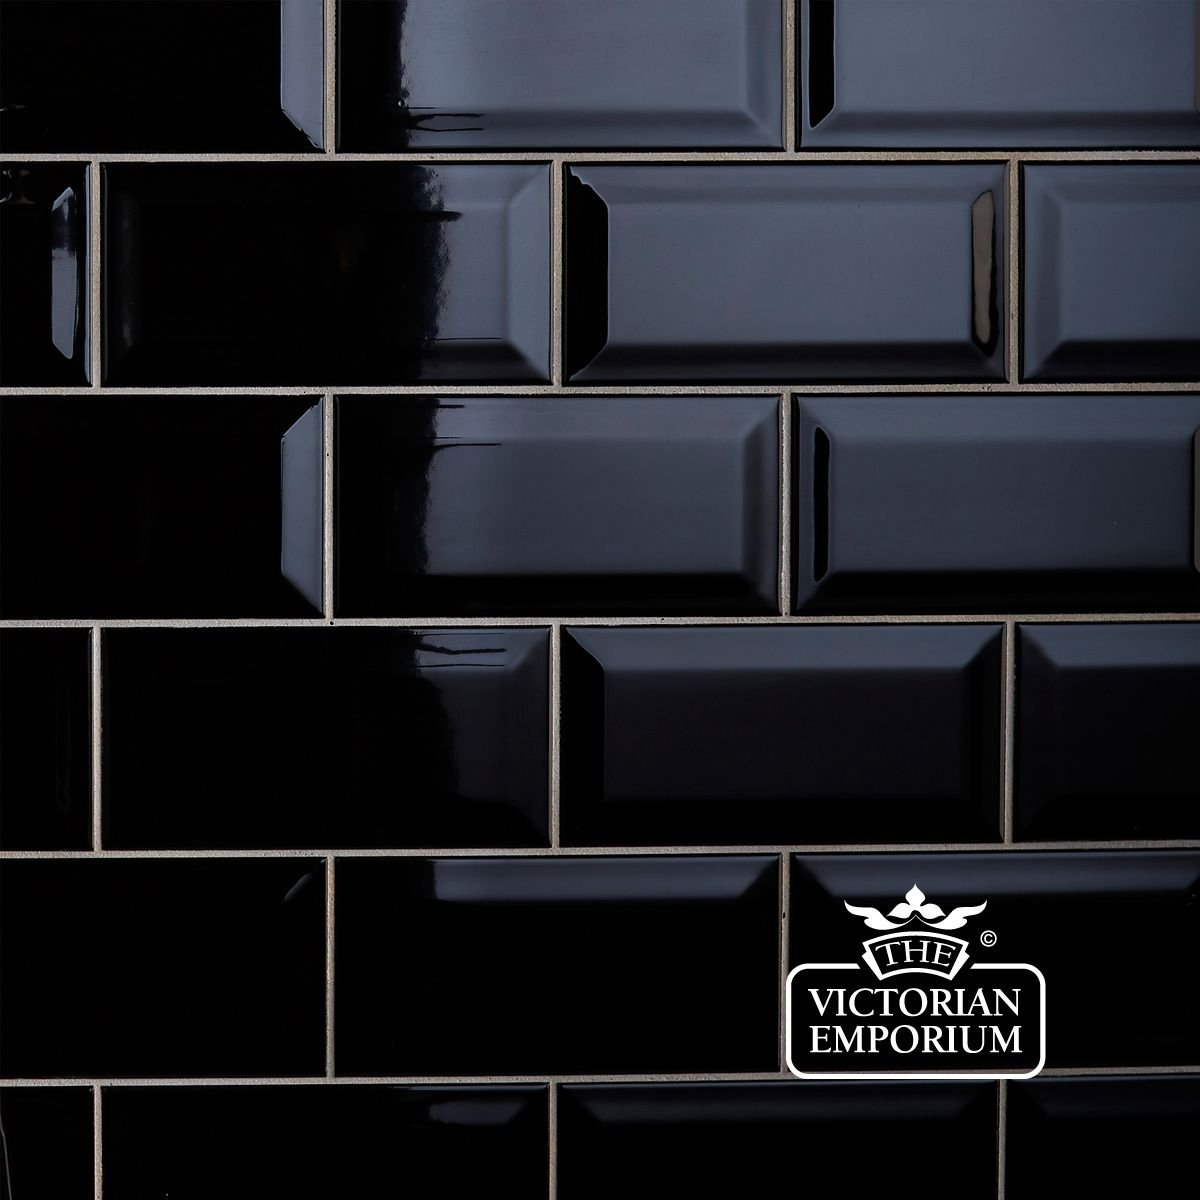 Black Gloss Kitchen Wall Tiles: Bevel Wall Tiles - 100x200mm Black